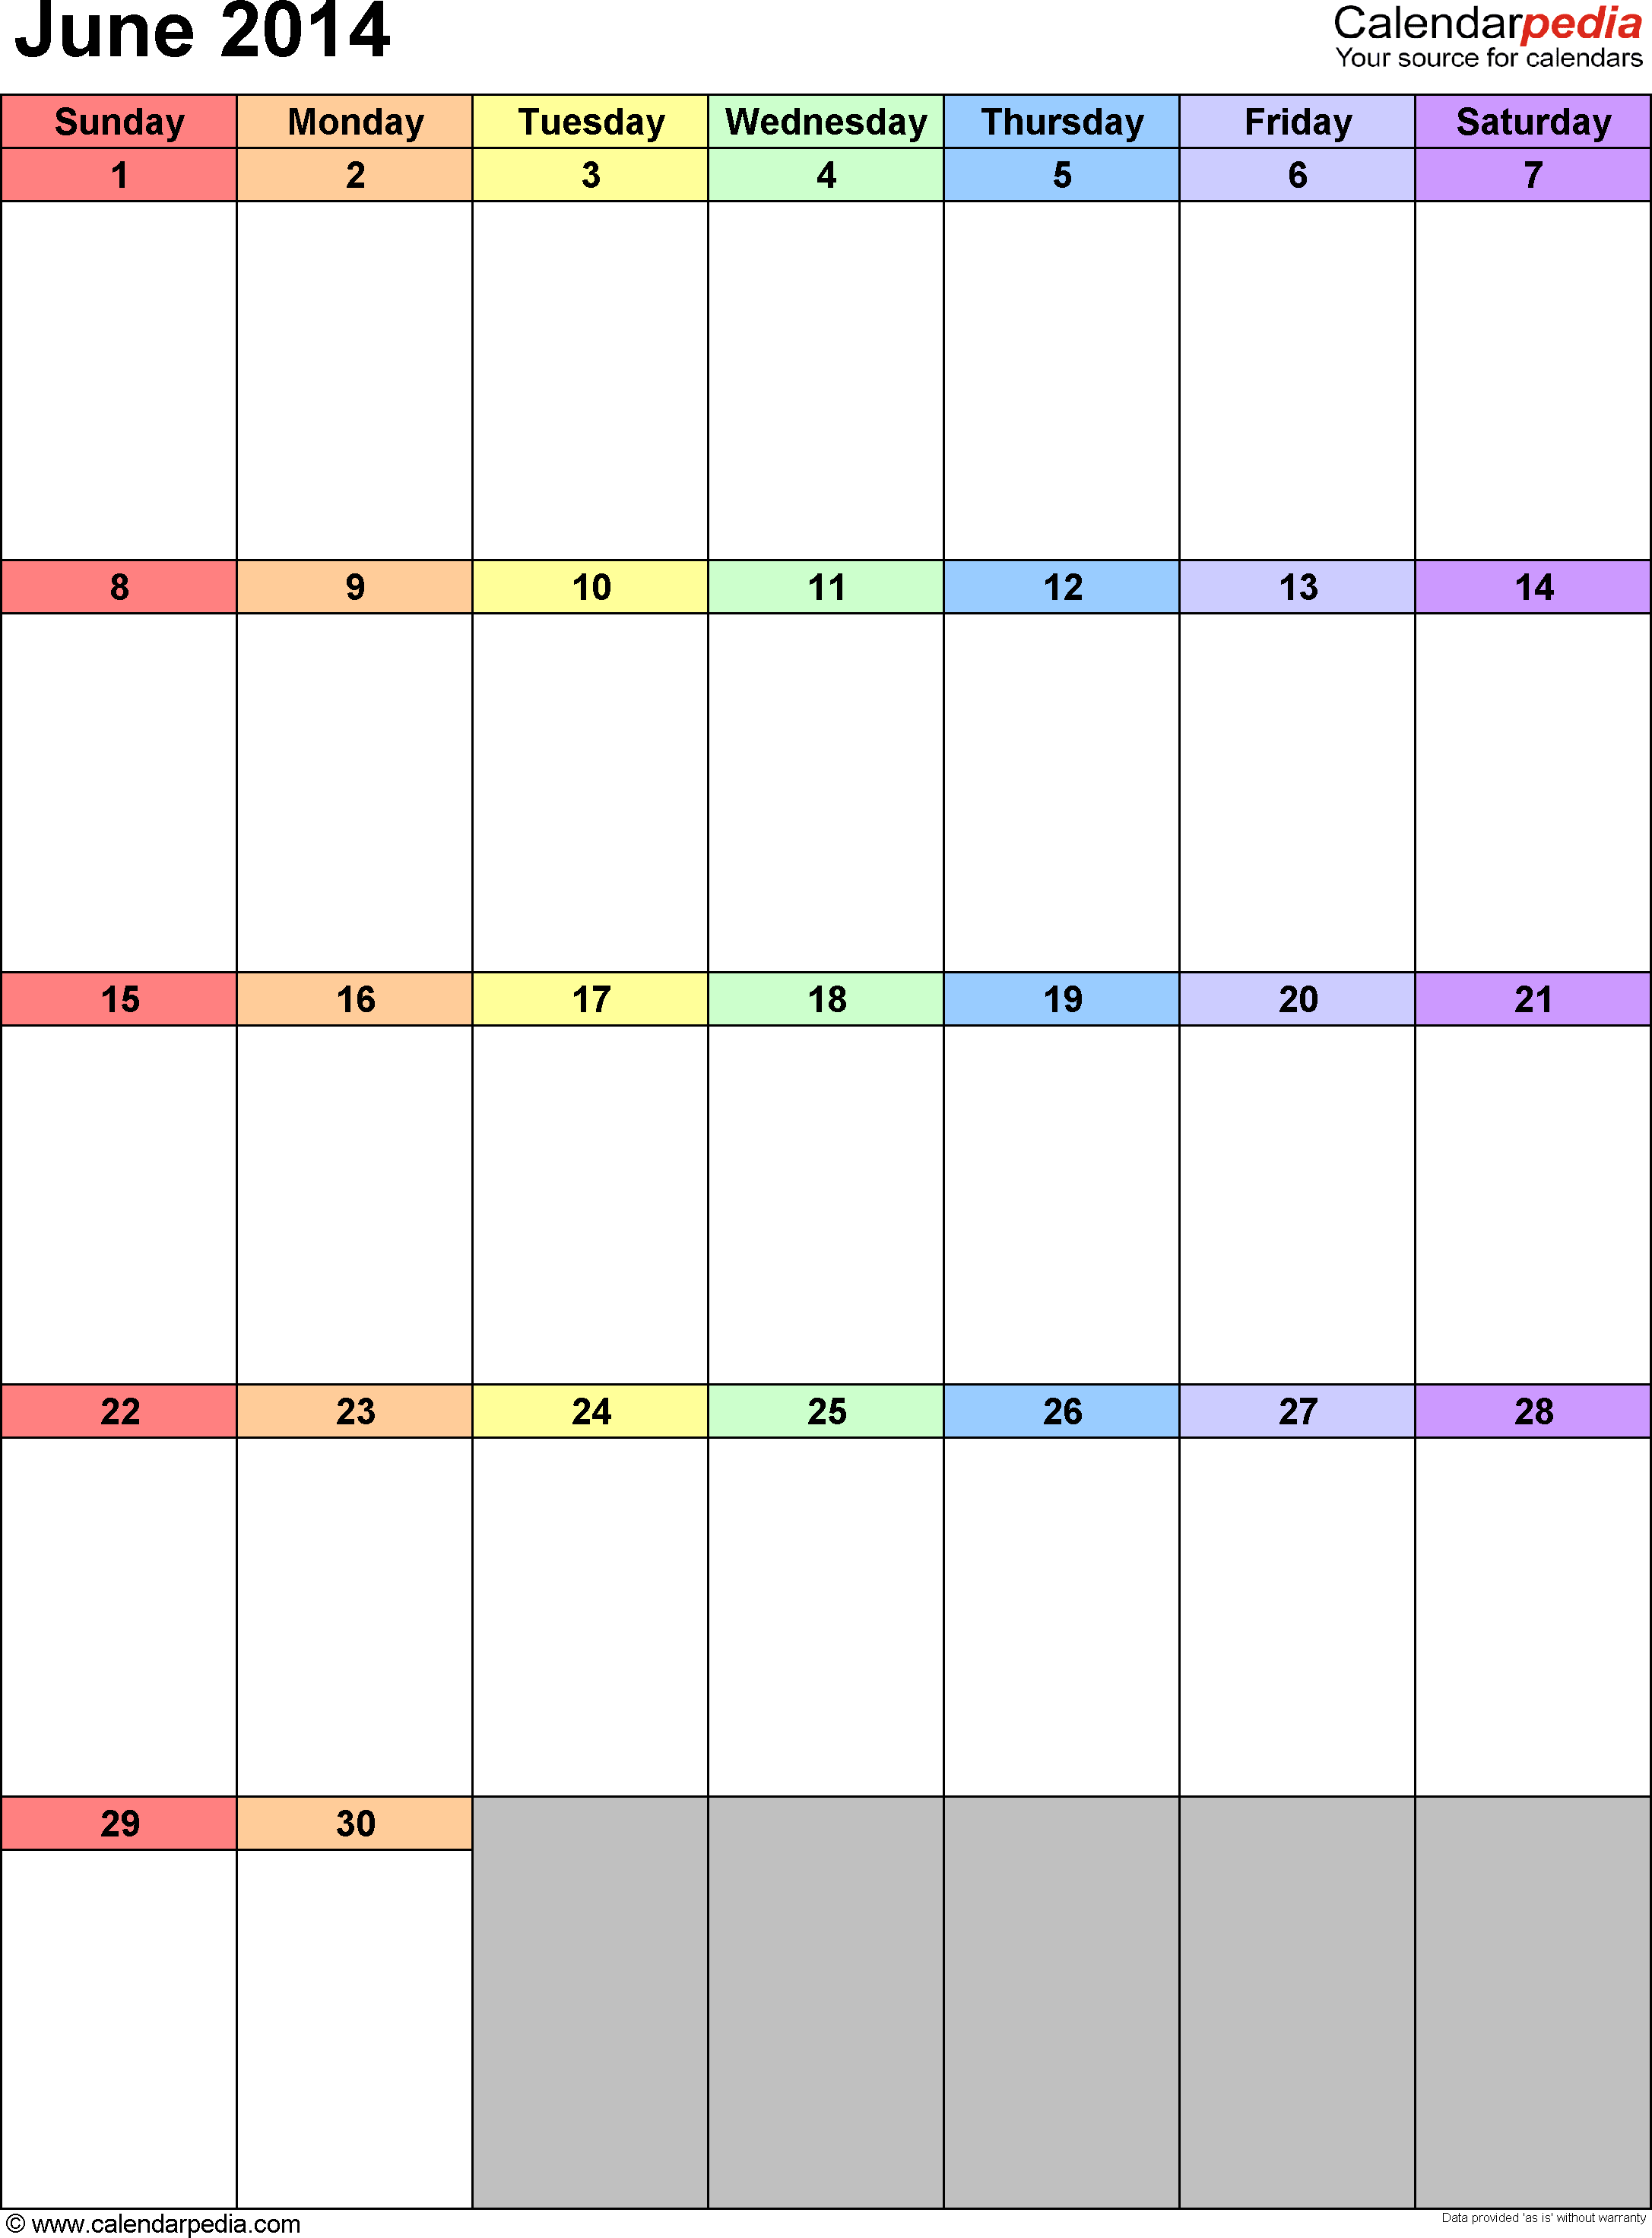 June 2014 calendar as printable Word, Excel & PDF templates